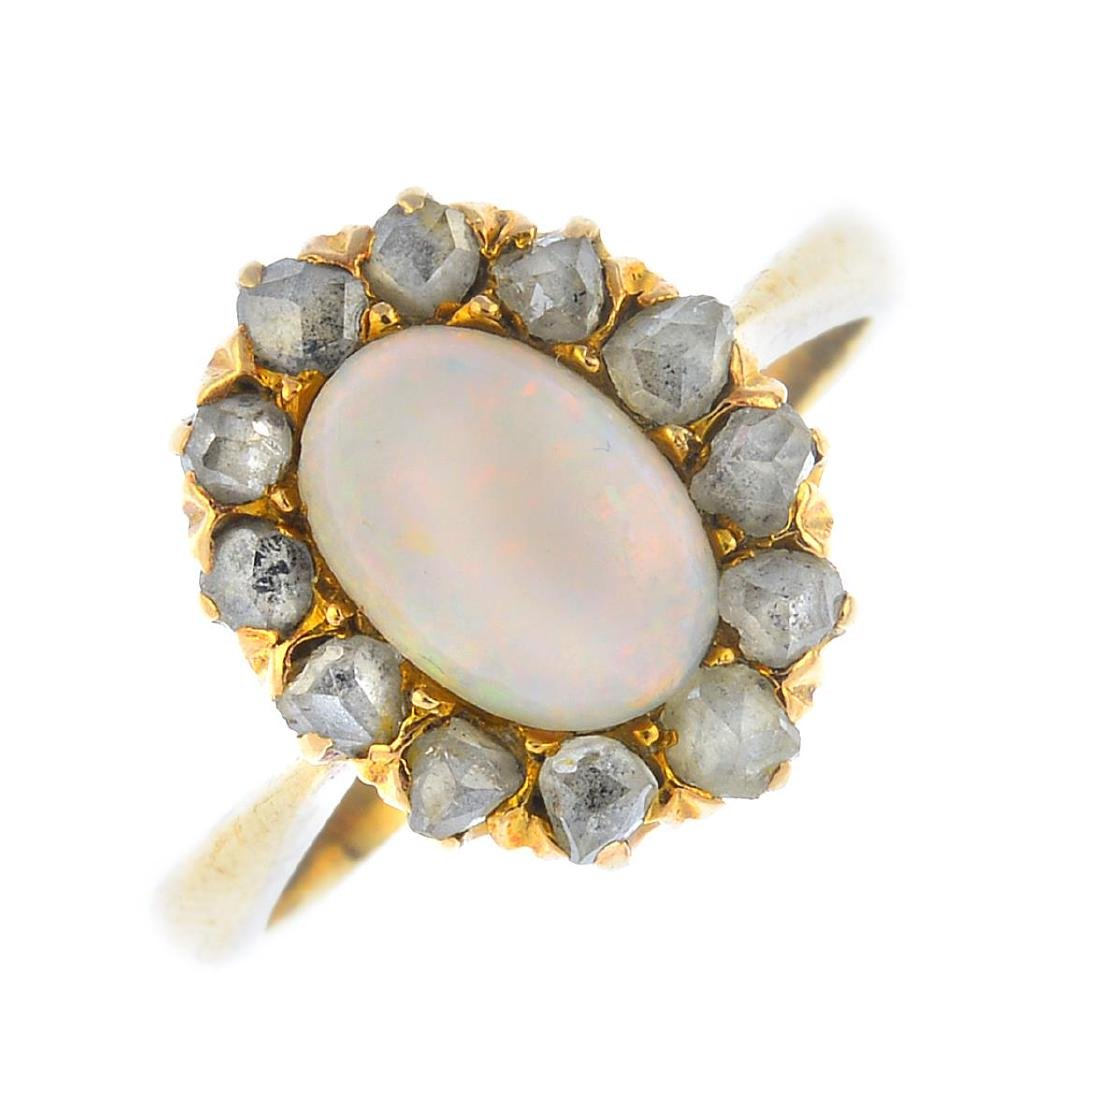 An opal and diamond cluster ring. The oval opal